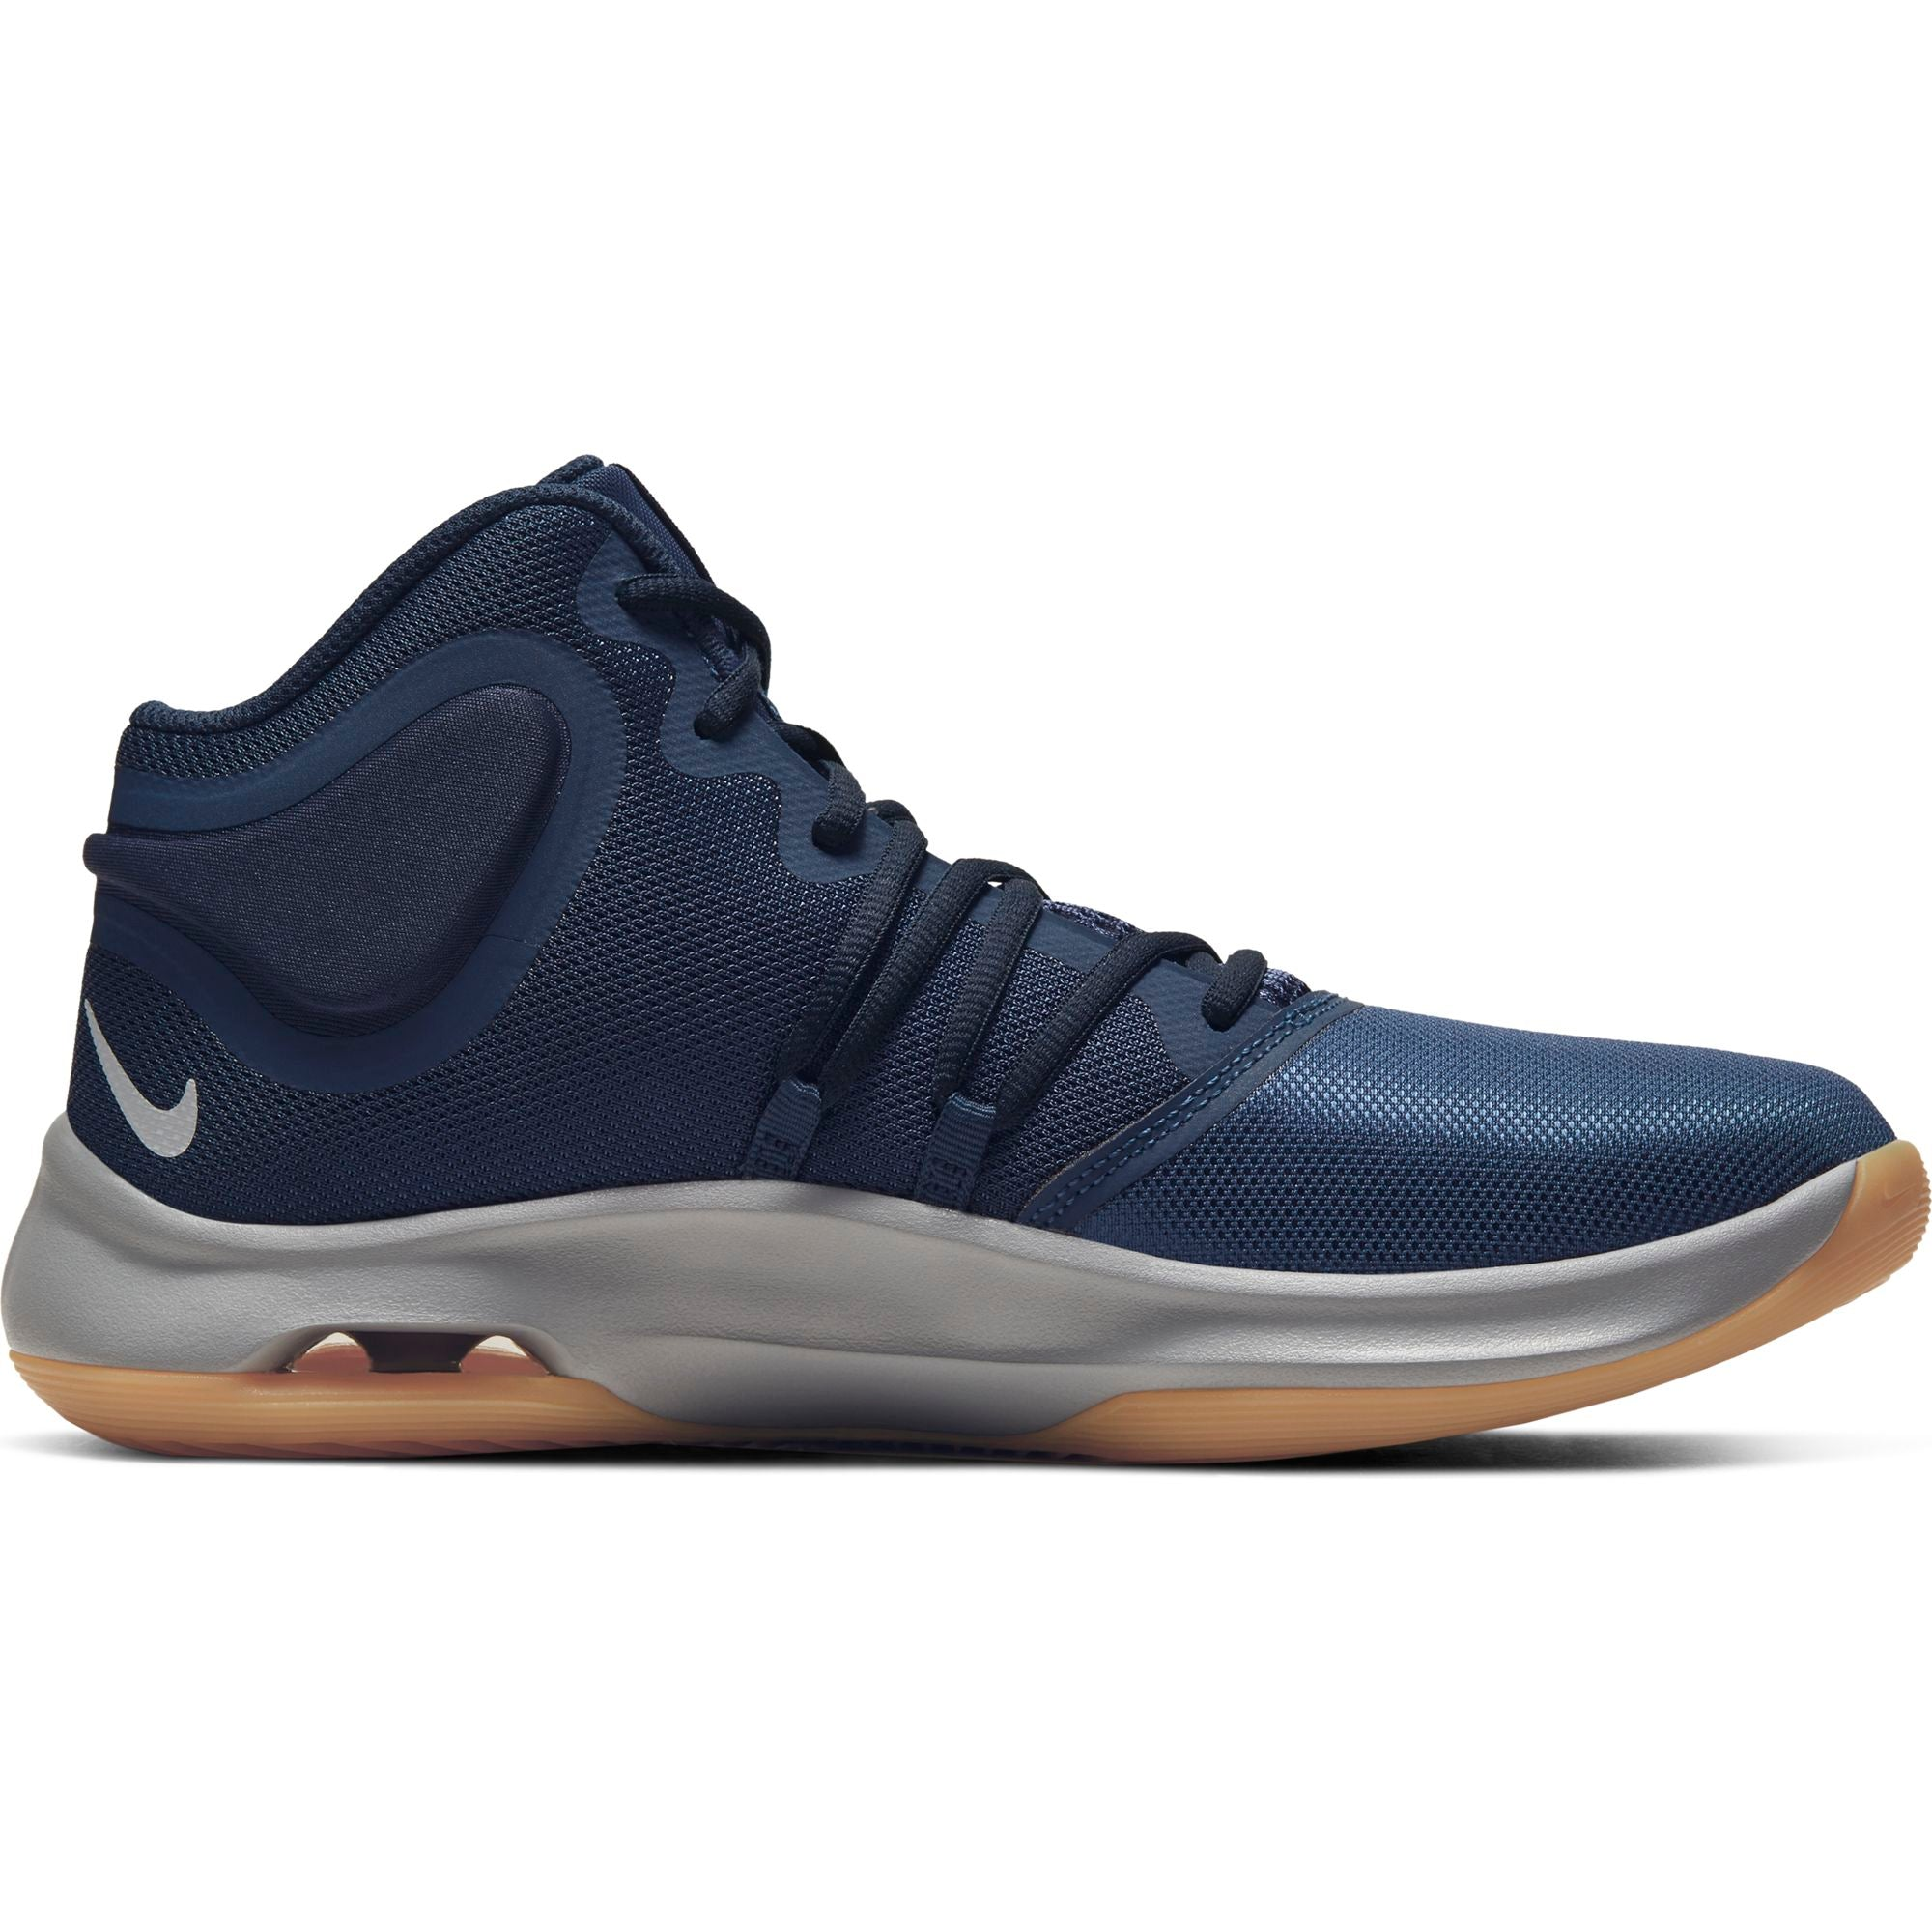 Nike Basketball Air Versitile IV Boot/Shoe - Midnight Navy/Metallic Silver/Obsidian